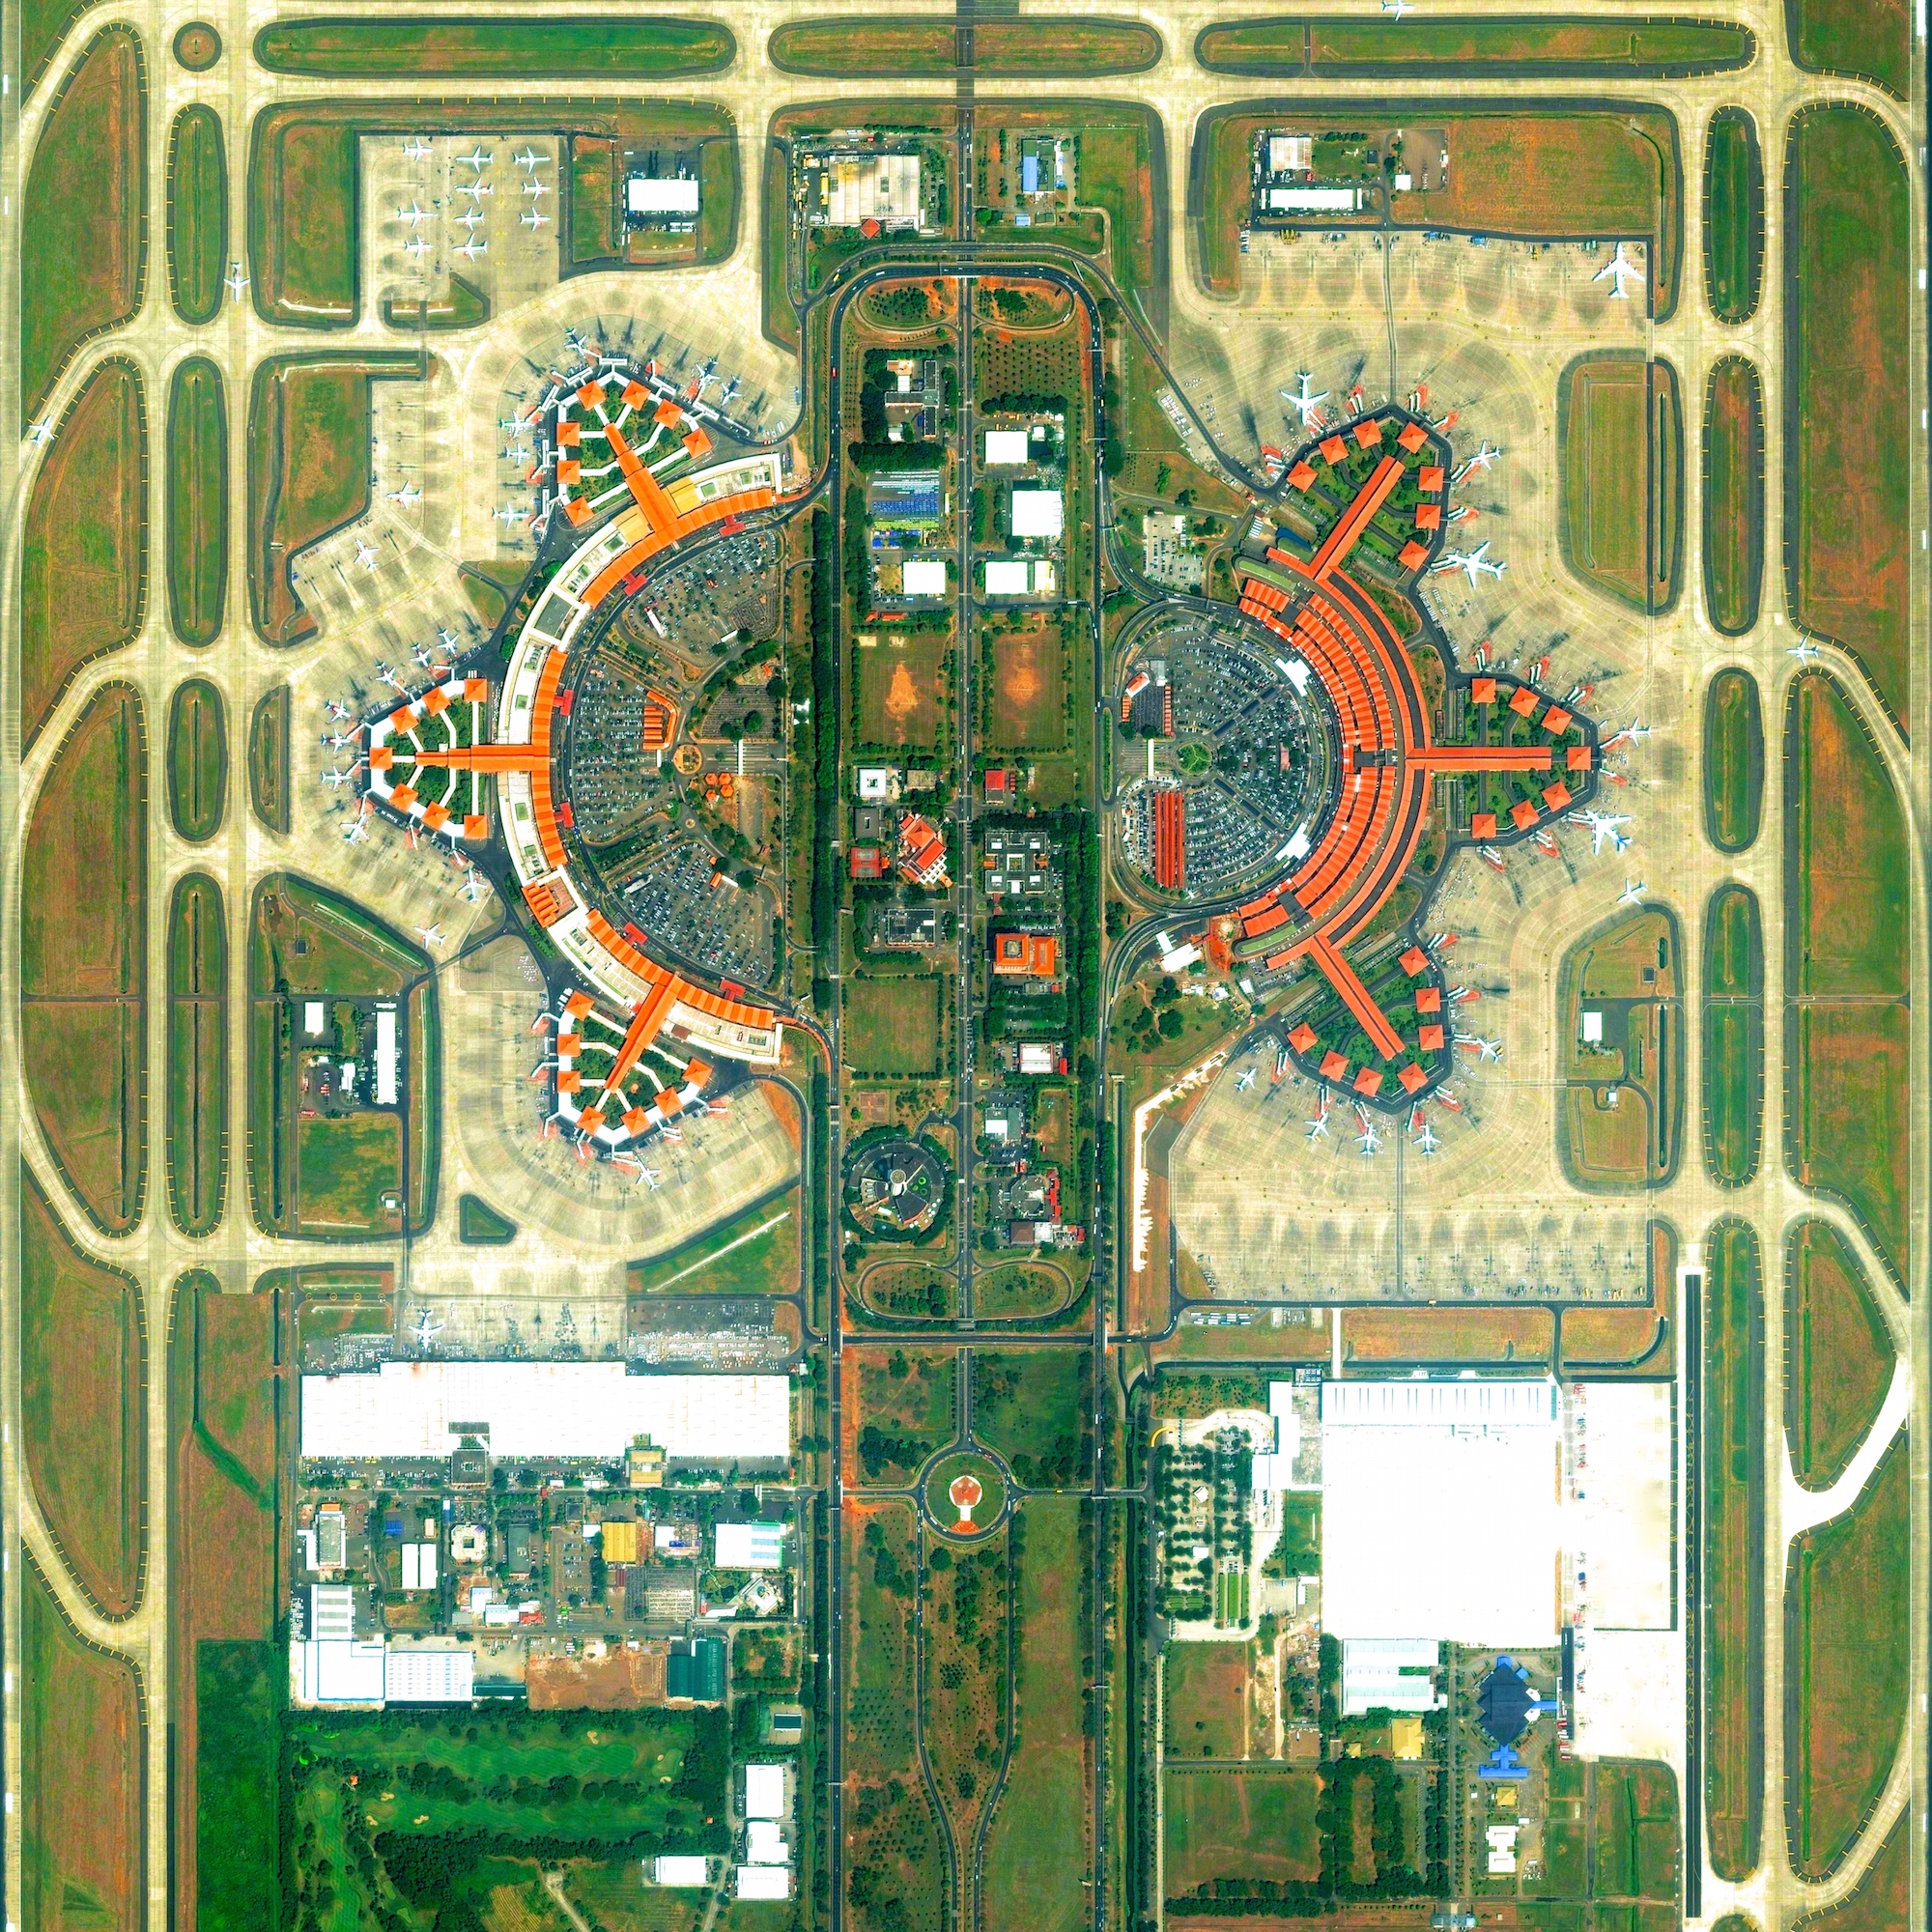 6/5/2015   Soekarno-Hatta International Airport   Jakarta, Java, Indonesia   -6.125556  ,  106.655833     Soekarno-Hatta International Airport in Jakarta, Indonesia is the 9th busiest airport in the world, serving approximately 57.8 million passengers each year. The boarding pavilions are examples of classic Indonesian architecture with roofs built in the Javanese stepped-roof style.